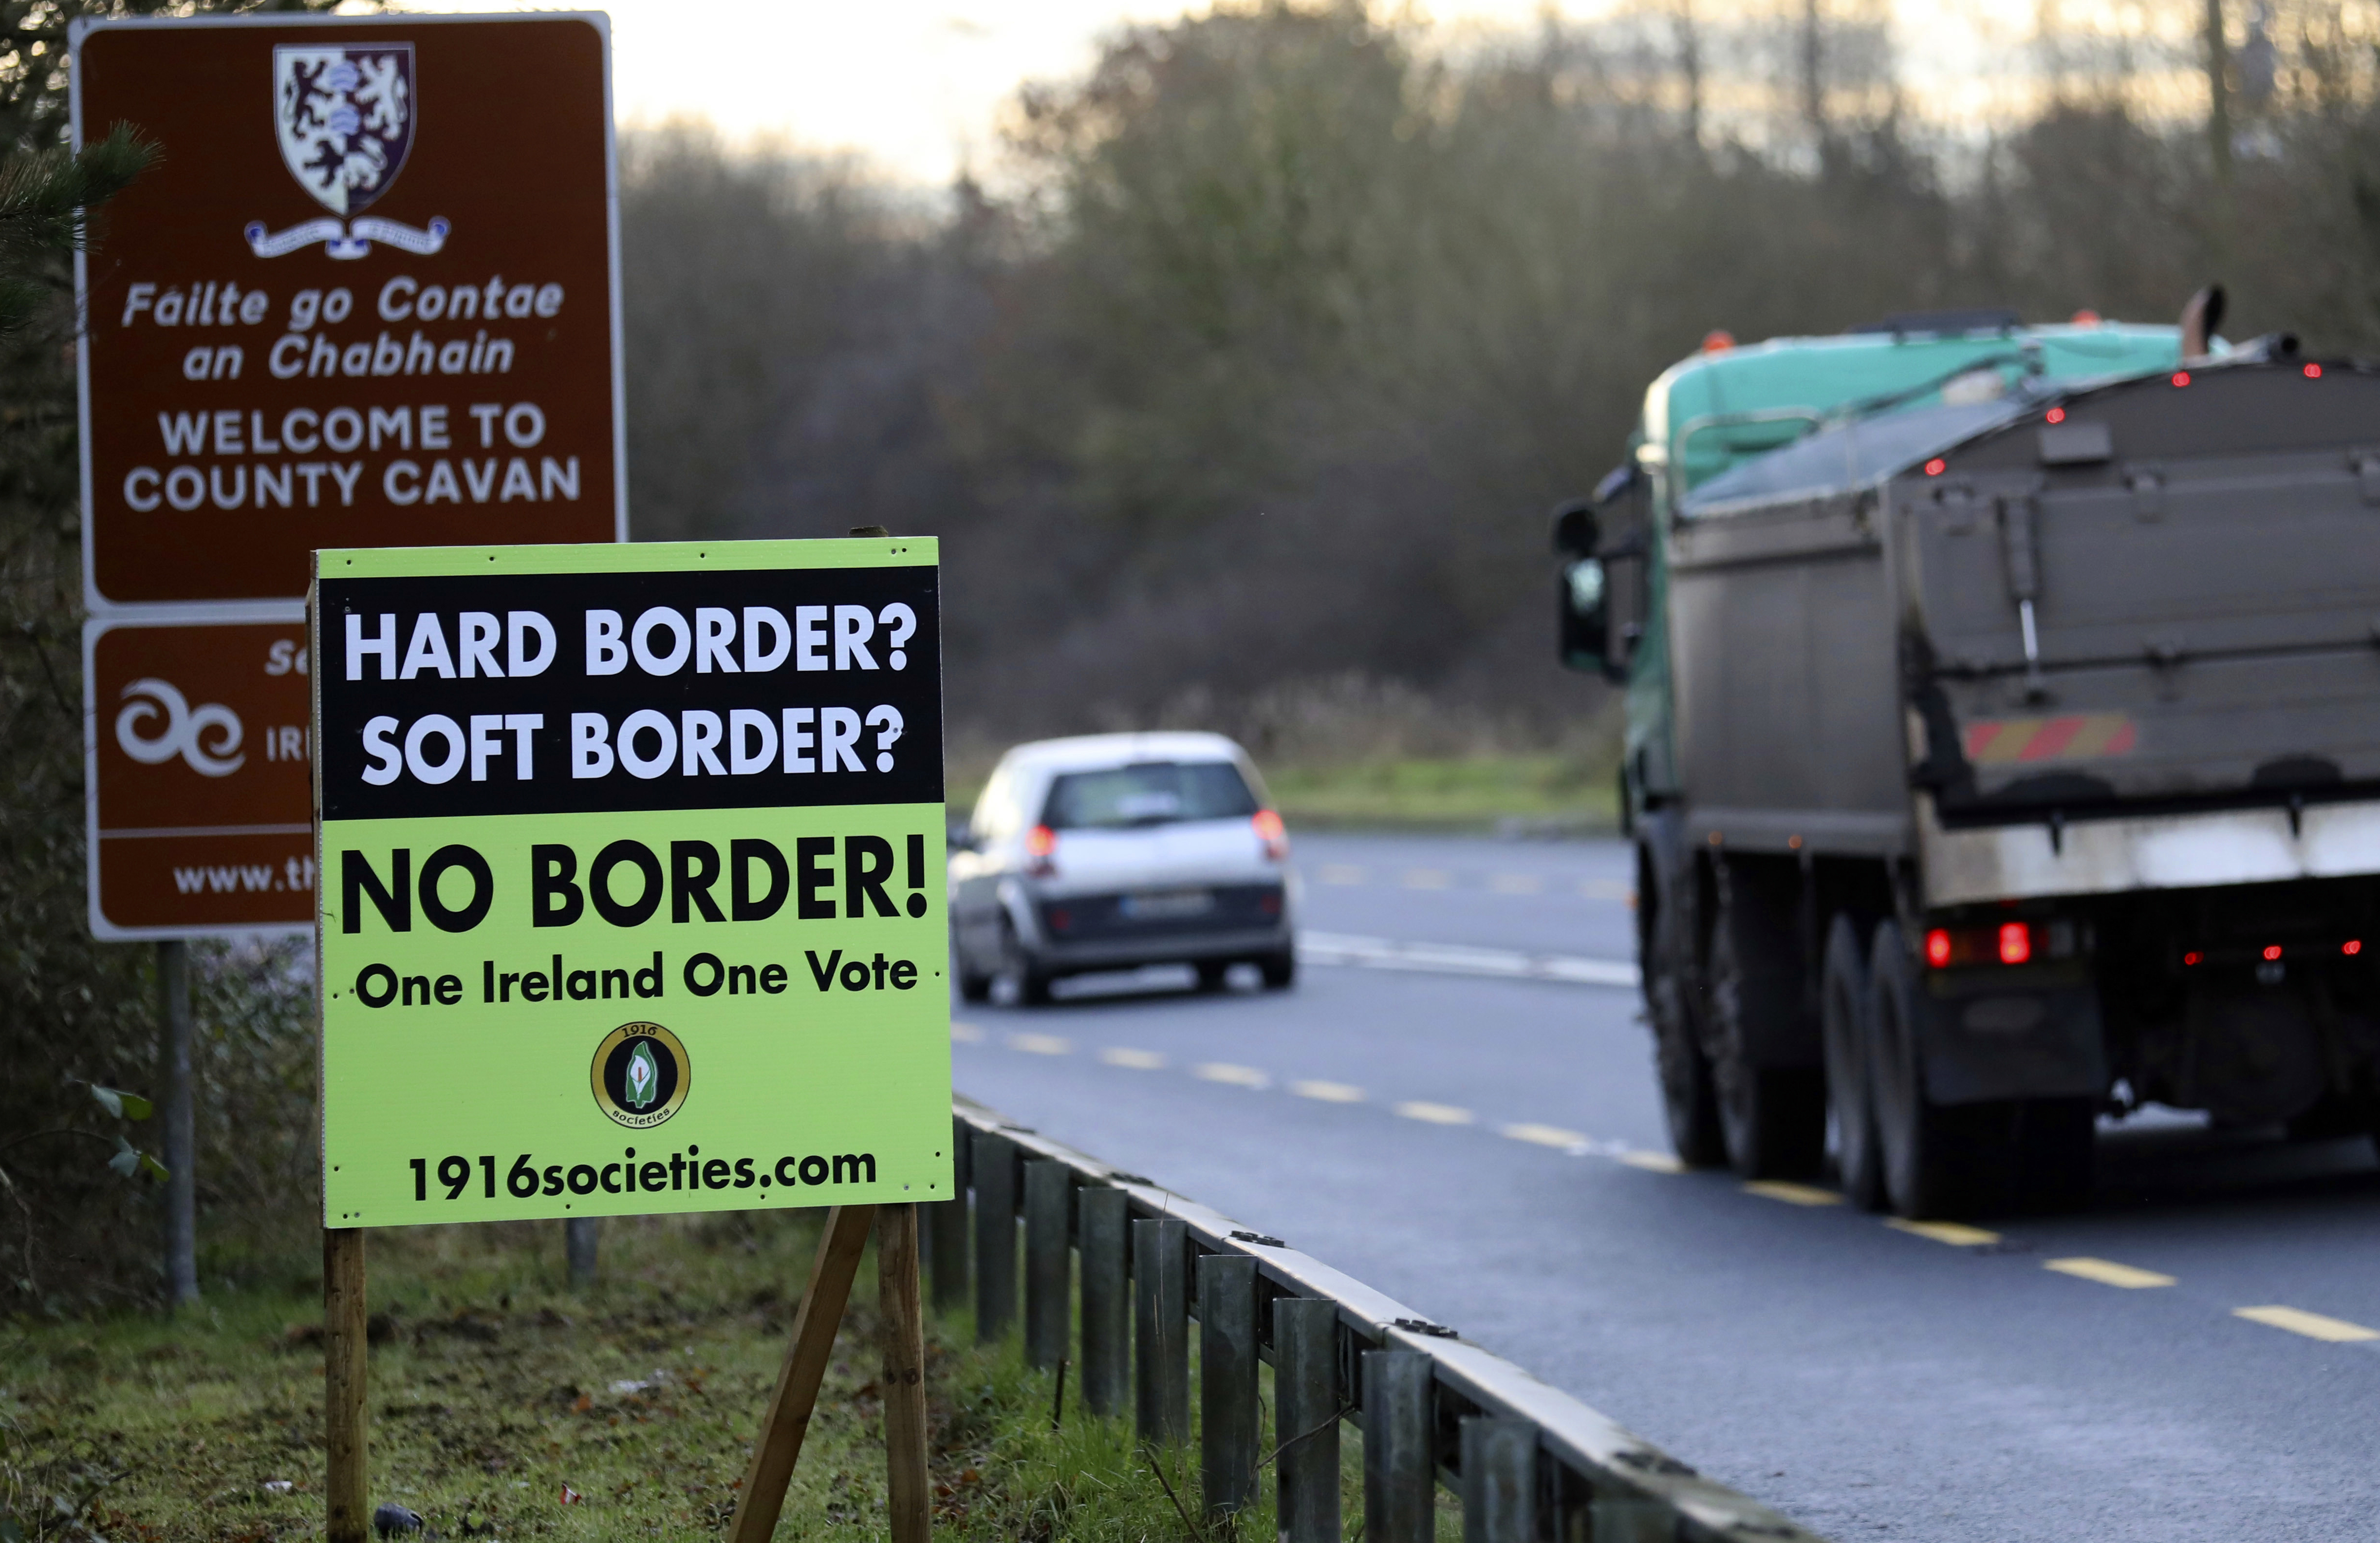 A poster against a hard border stands on the border between Northern Ireland and the Republic of Ireland near the town of Derrylin, Northern Ireland, Dec. 12, 2018.